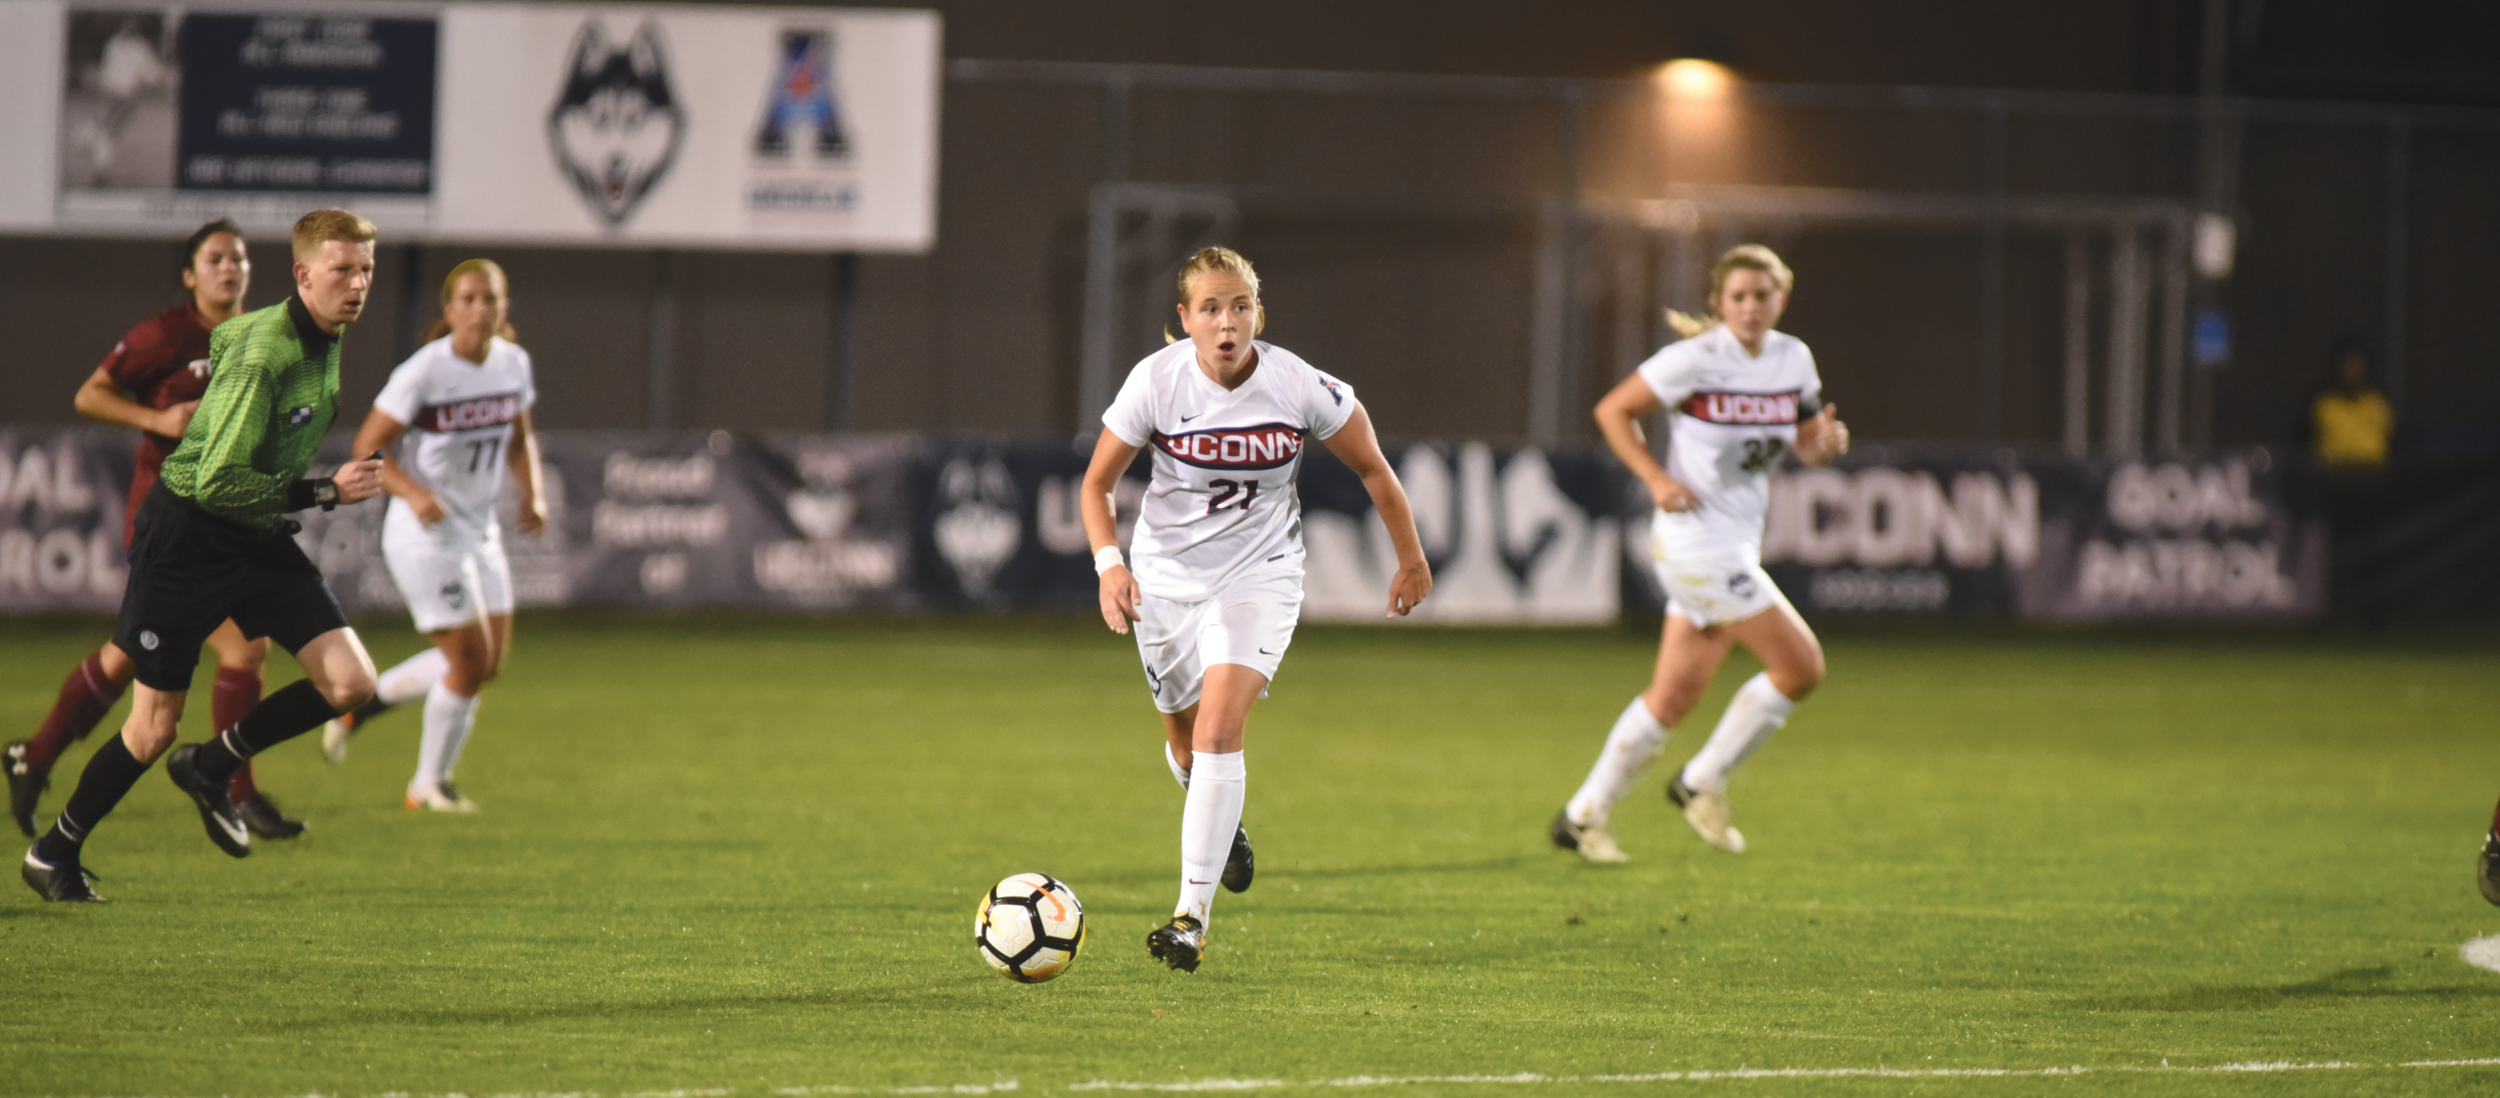 The Huskies (1-1) were faced with a different defense compared to their last time out against Providence. The Friars played an up-tempo and aggressive game compared to Fairfield's clumped-together formations and ball-following style, forcing the Huskies to adjust physically and mentally.  Photo by Charlotte Lao / The Daily Campus